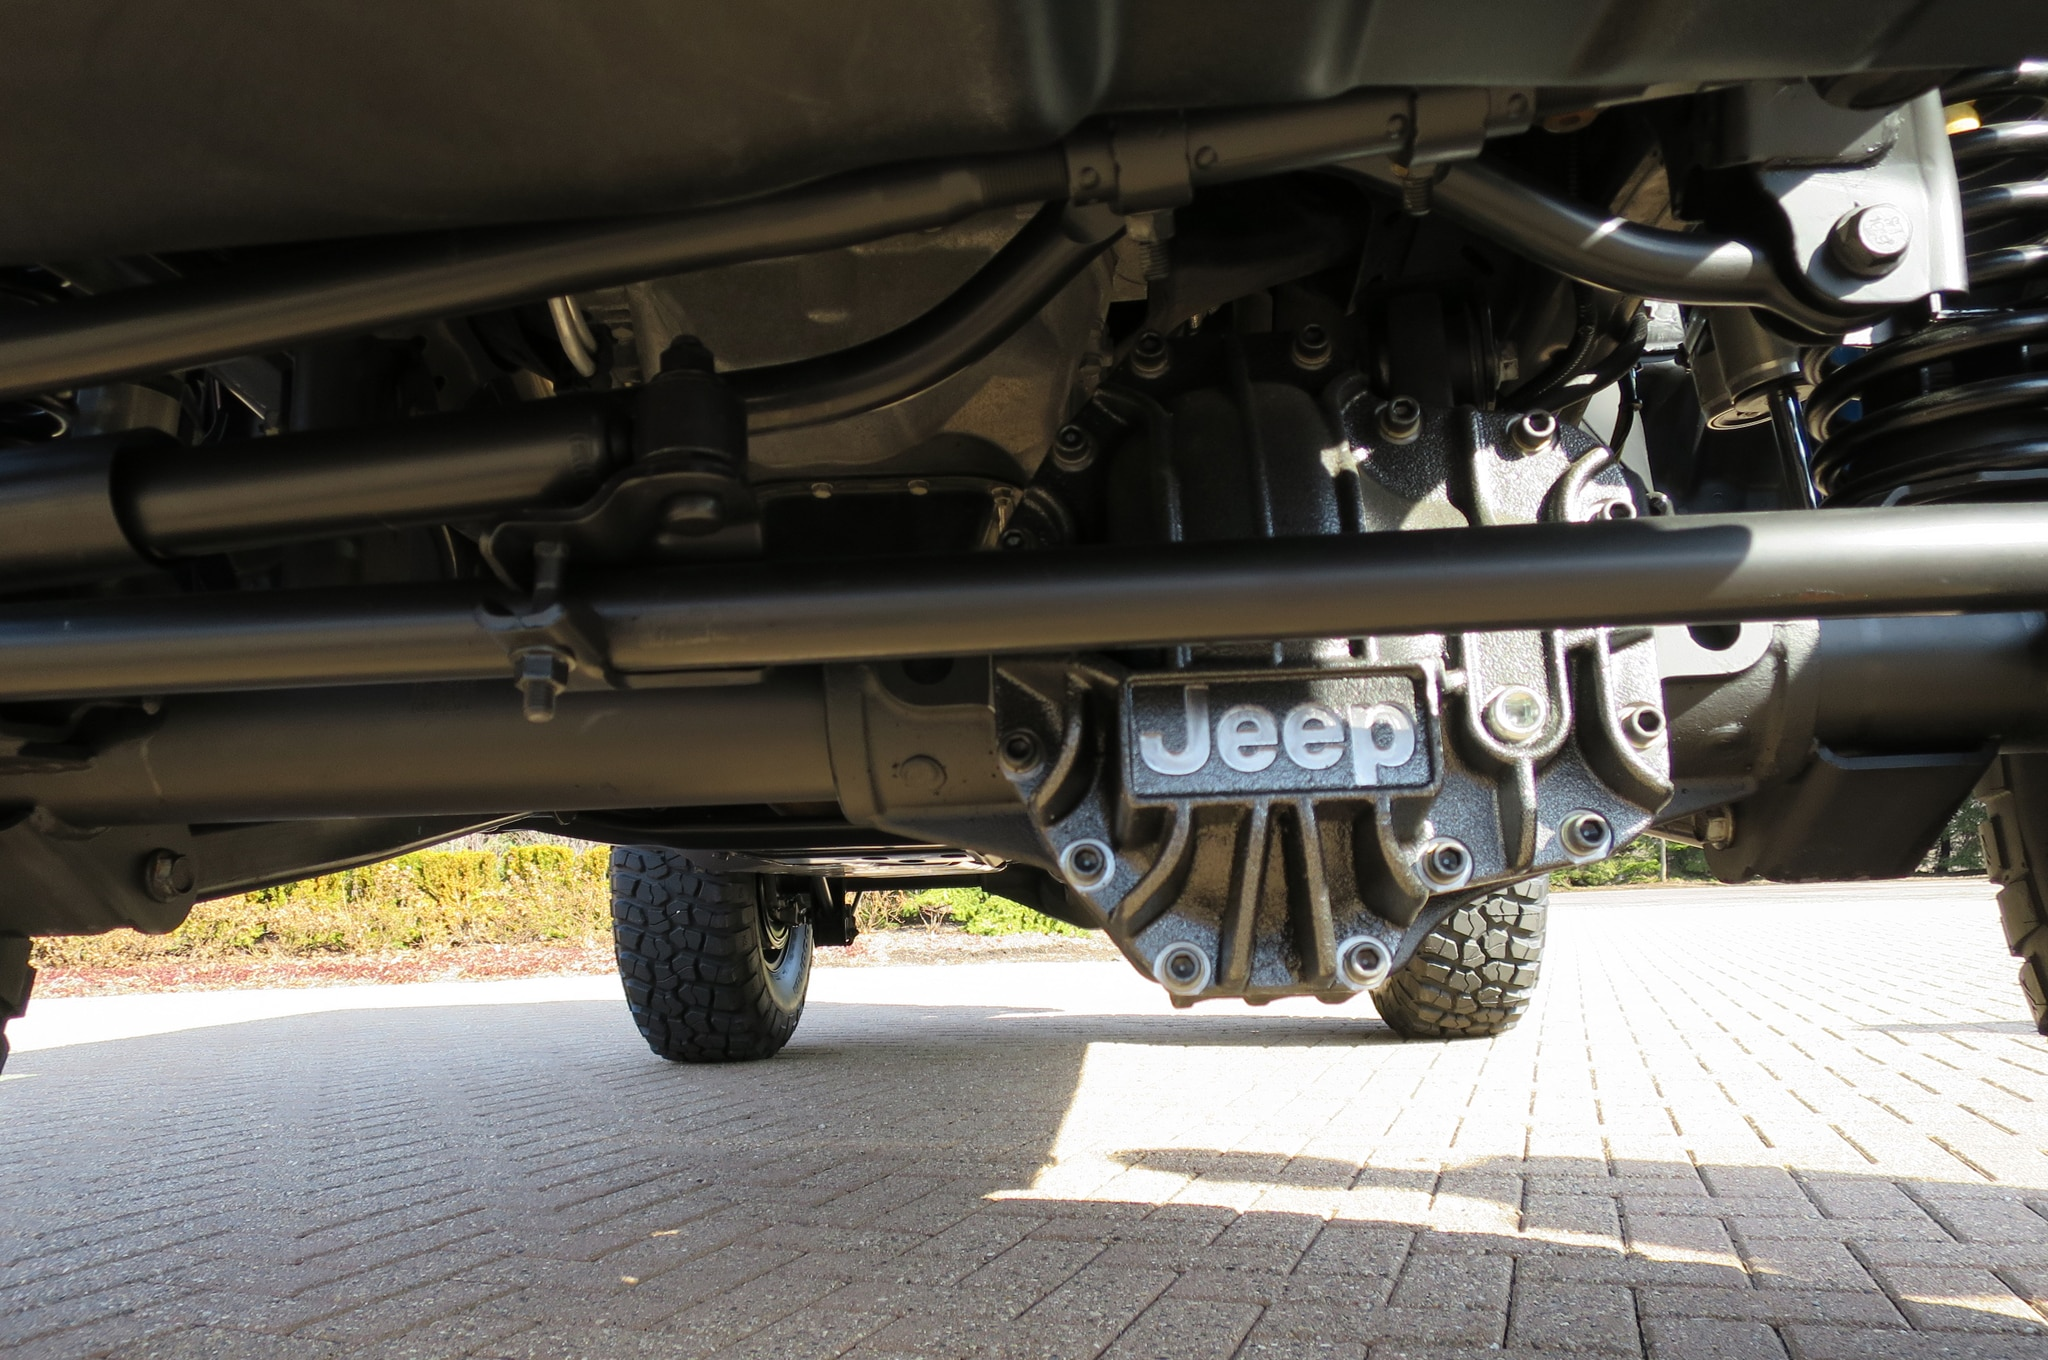 Jeep Wrangler Maximum Performance Concept axle